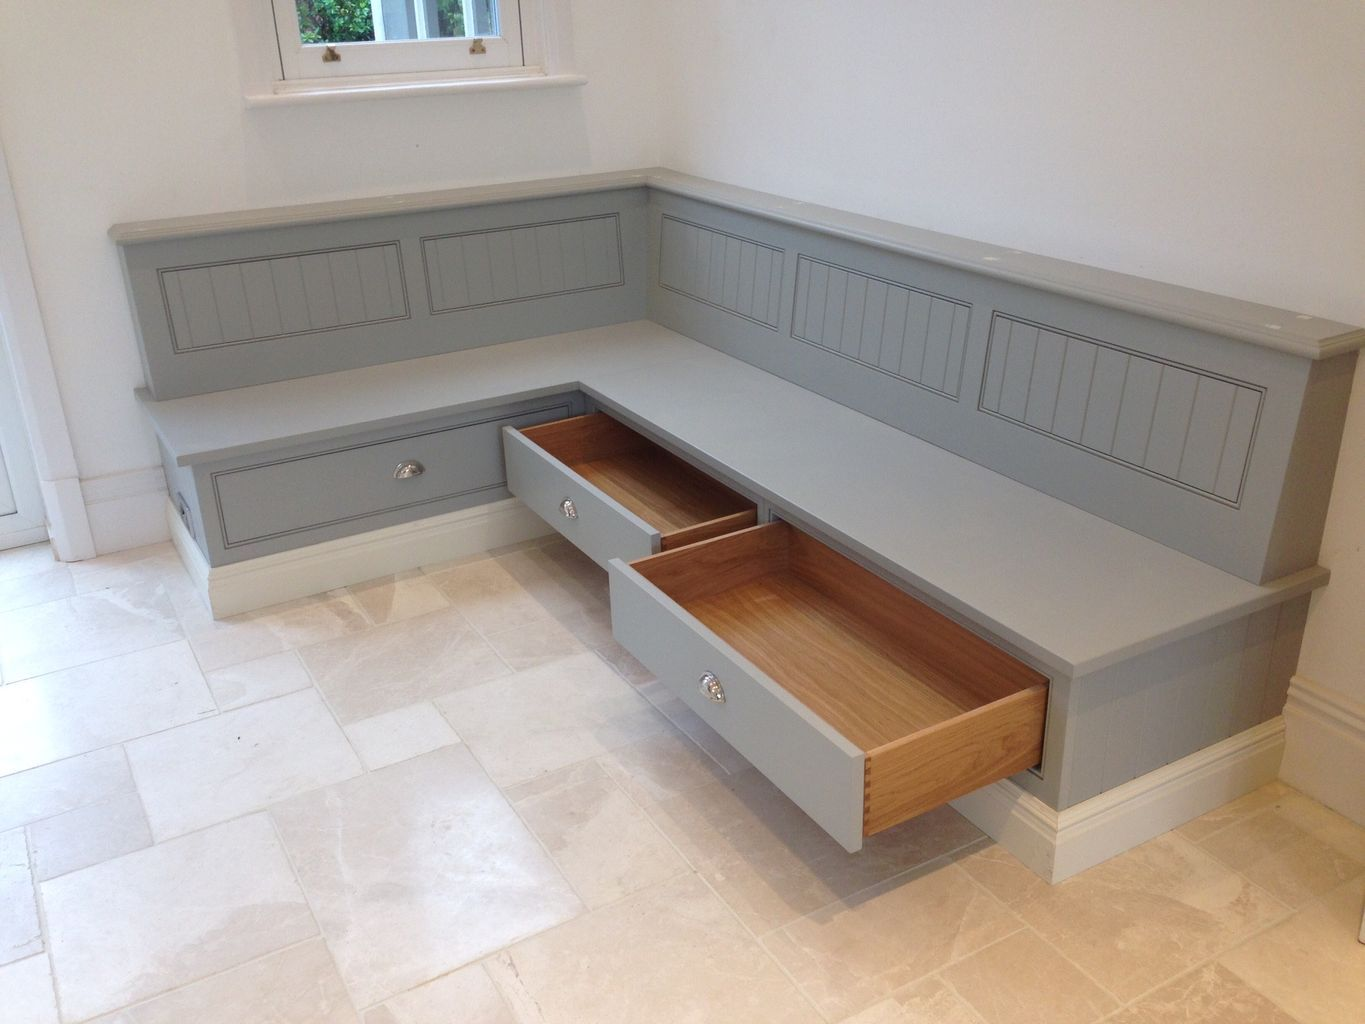 Pin By Nicki On Dining Room Bench Seating In 2020 Bench Seating